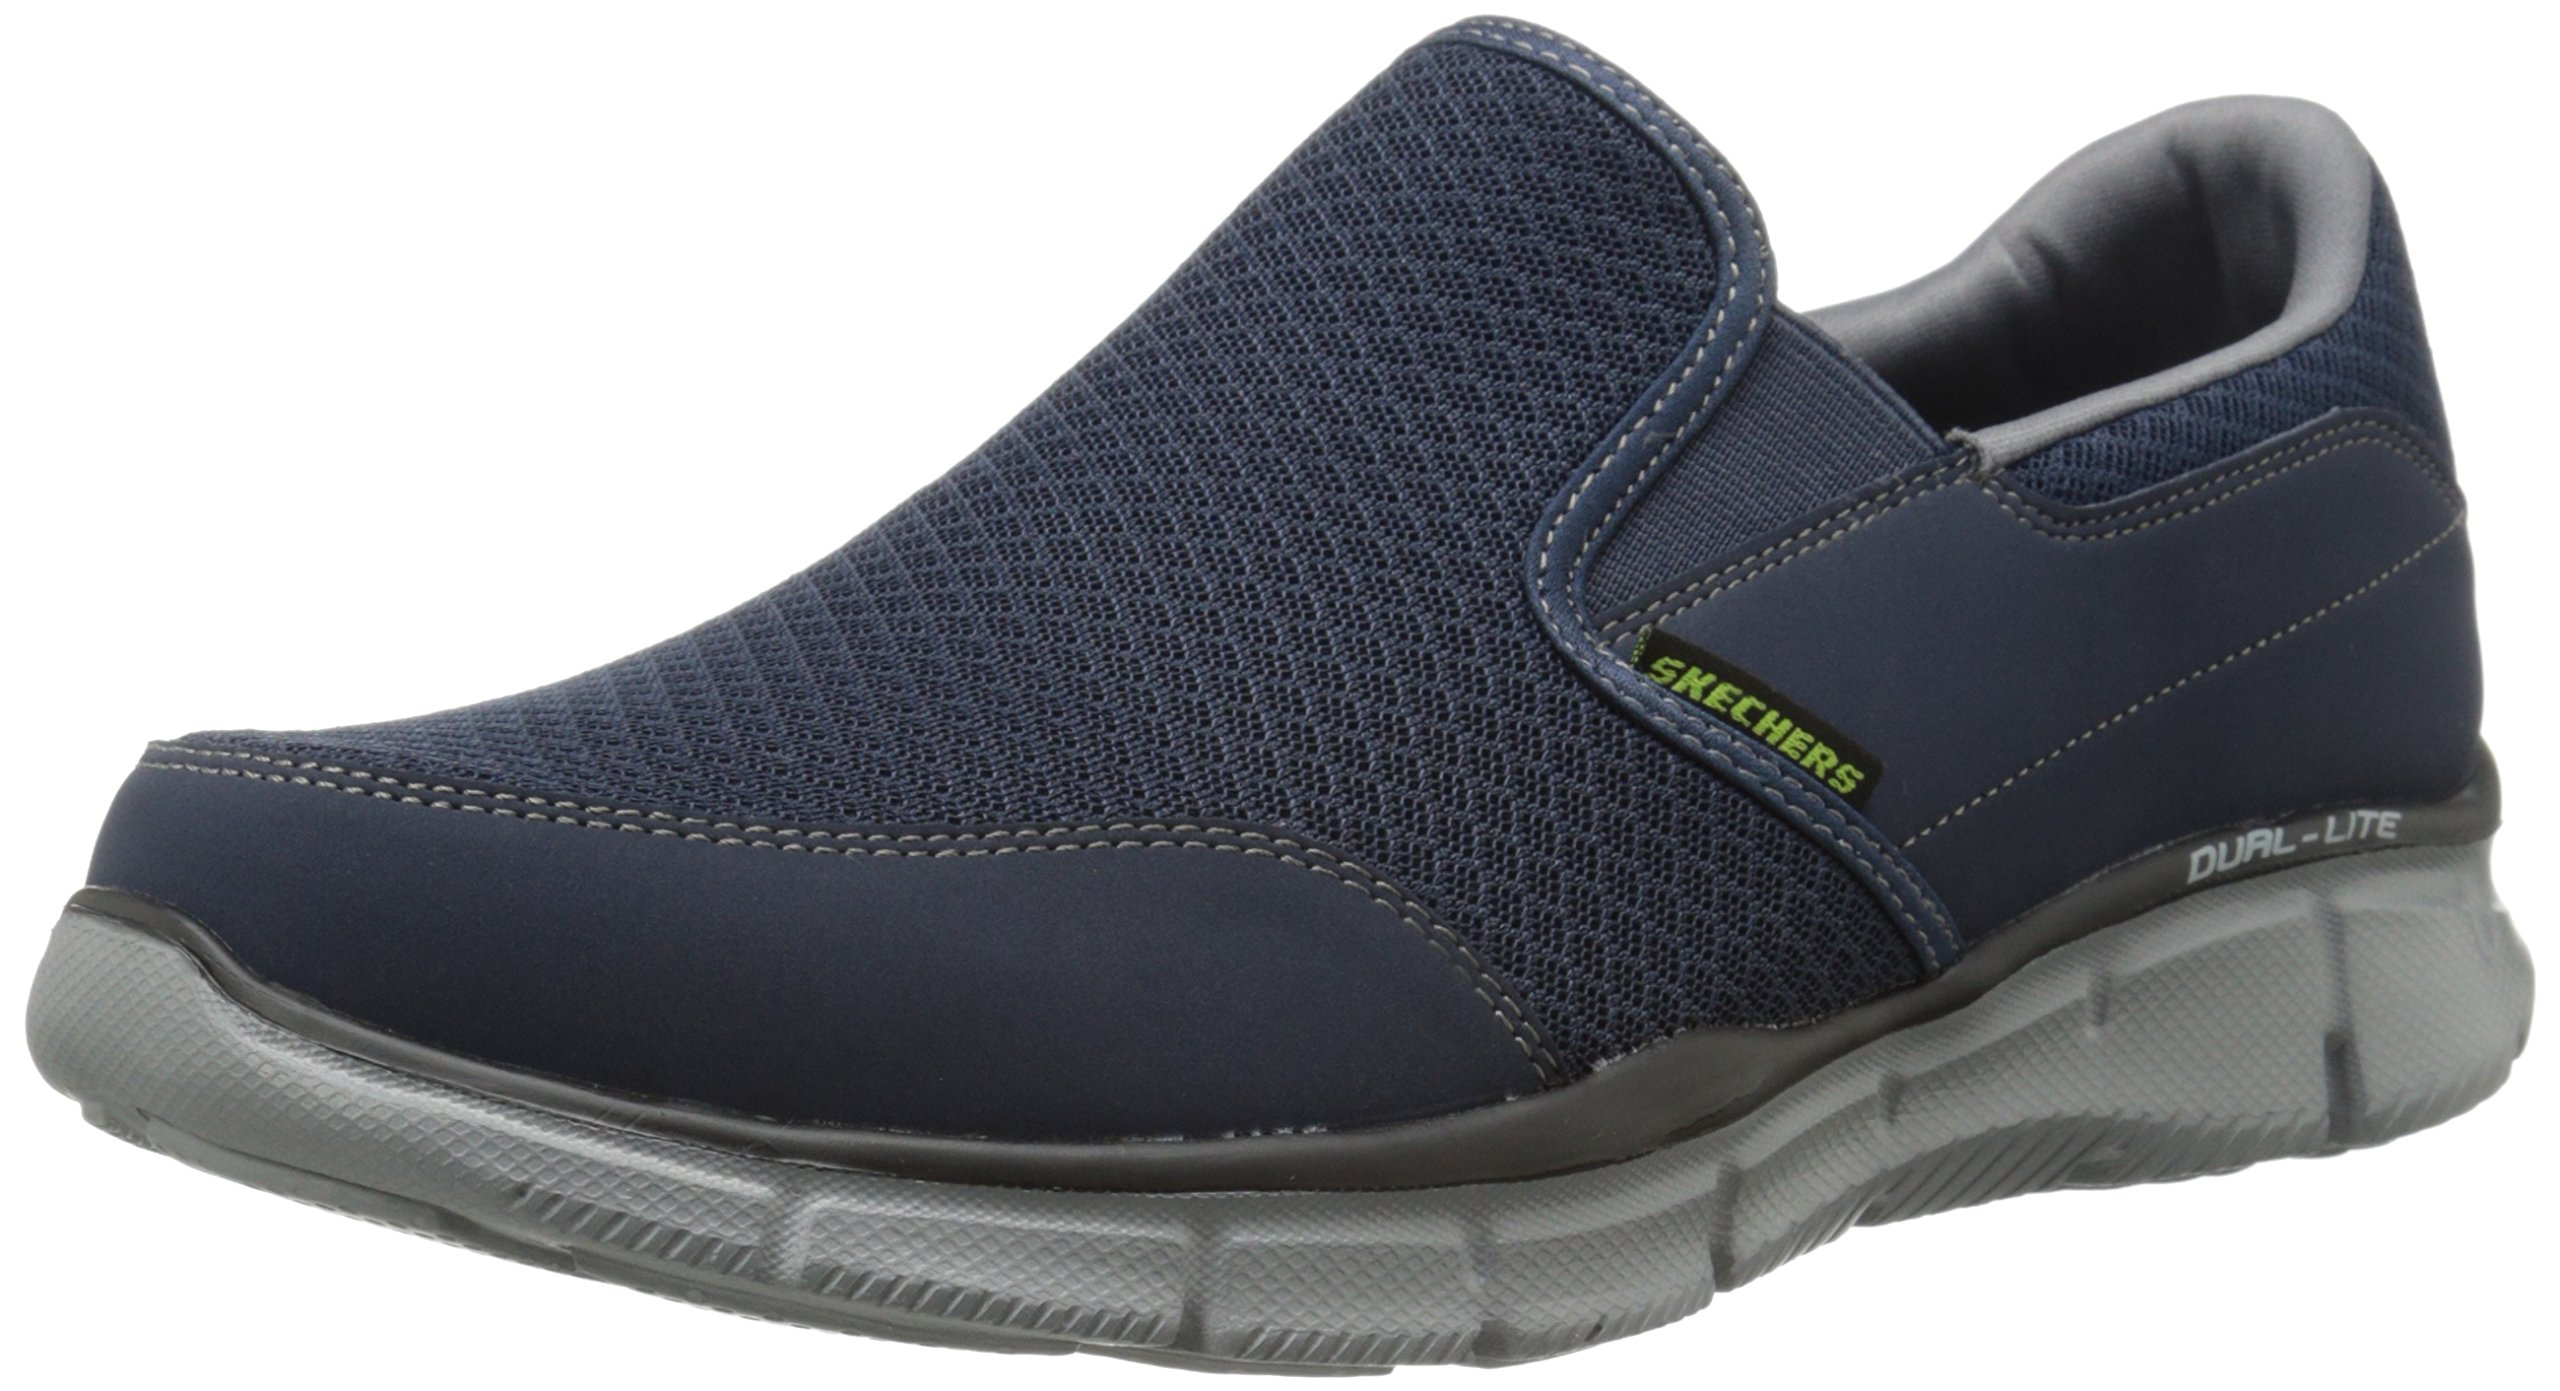 f6a40ae66d489 Skechers Men's Equalizer Persistent Slip-On Sneaker, Navy/Gray, 8.5 ...